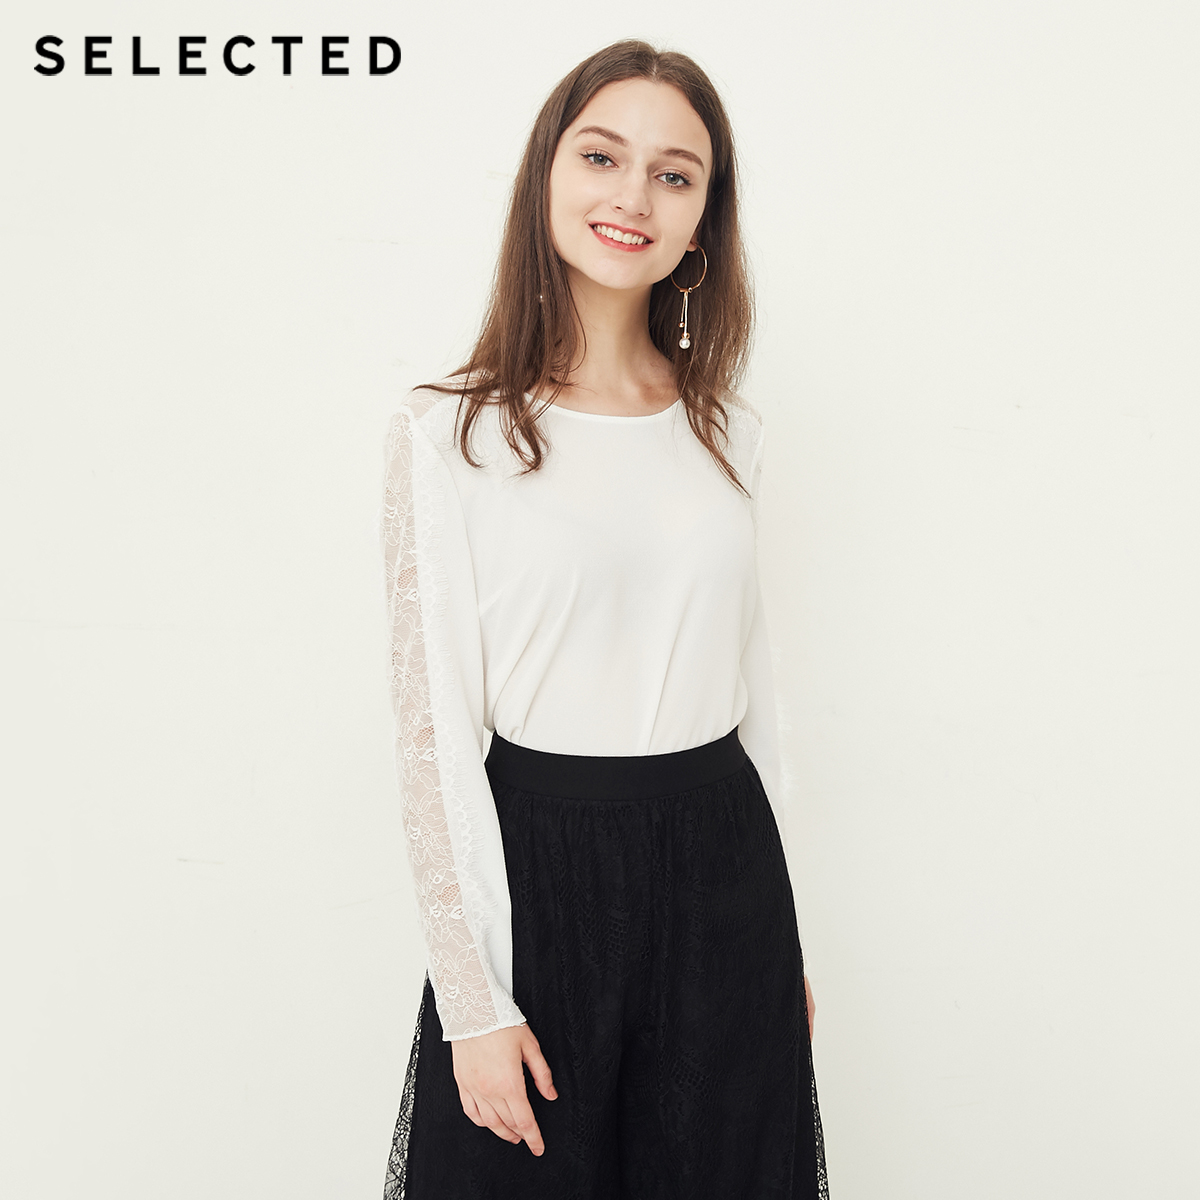 SELECTED Women s Round Neckline Lace Splice Long sleeved Tops S 4183W4503